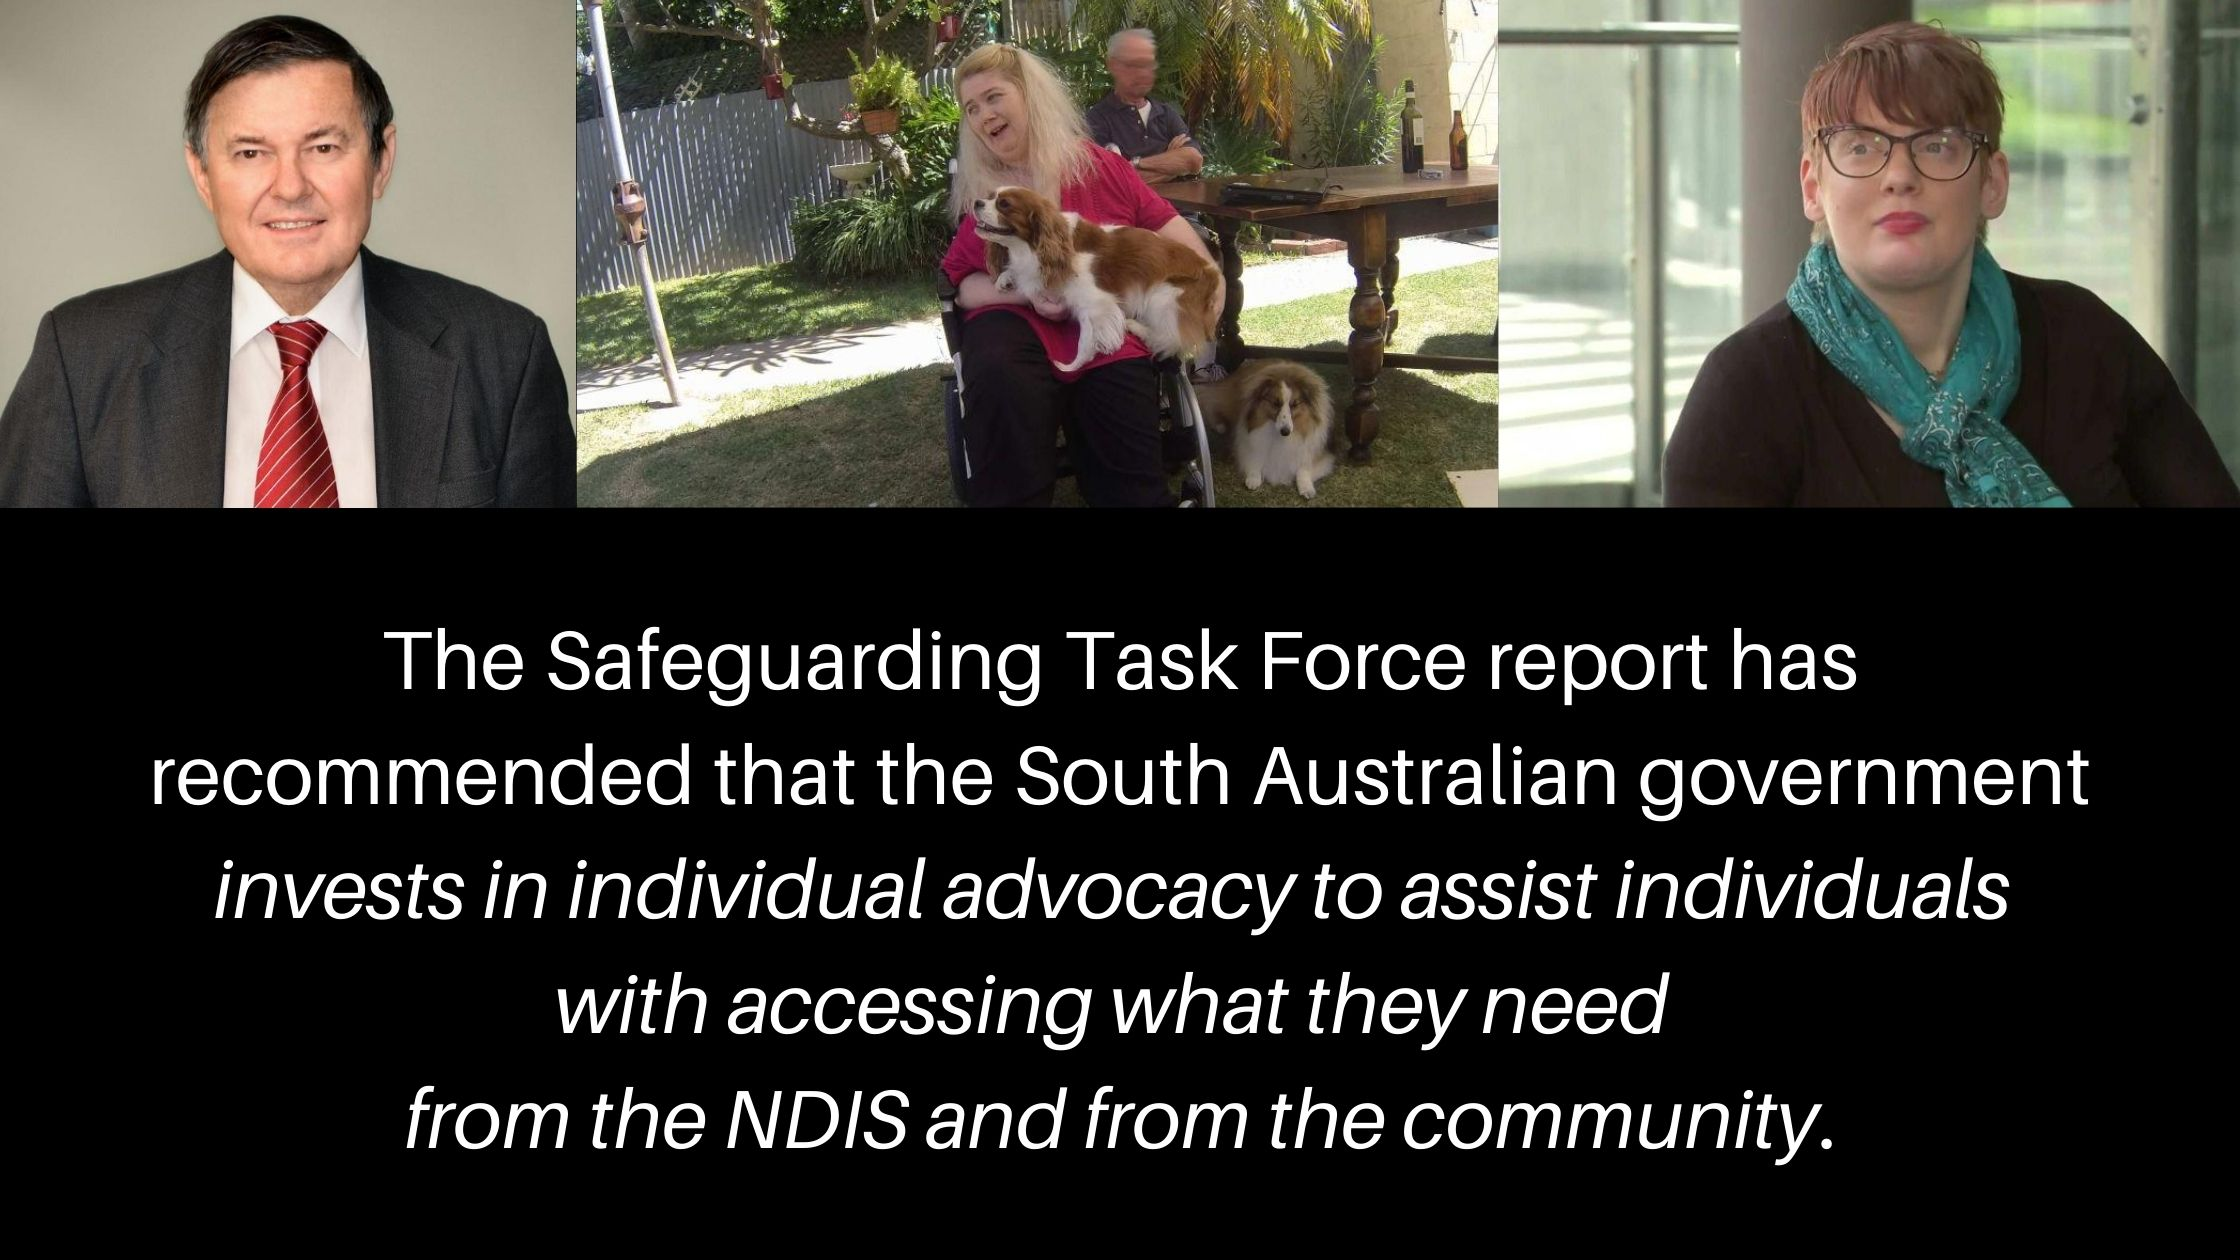 Pictures of Ann Marie Smith and Co-Chairs of Safeguarding Task Force, David Caudrey and Kelly Vincent